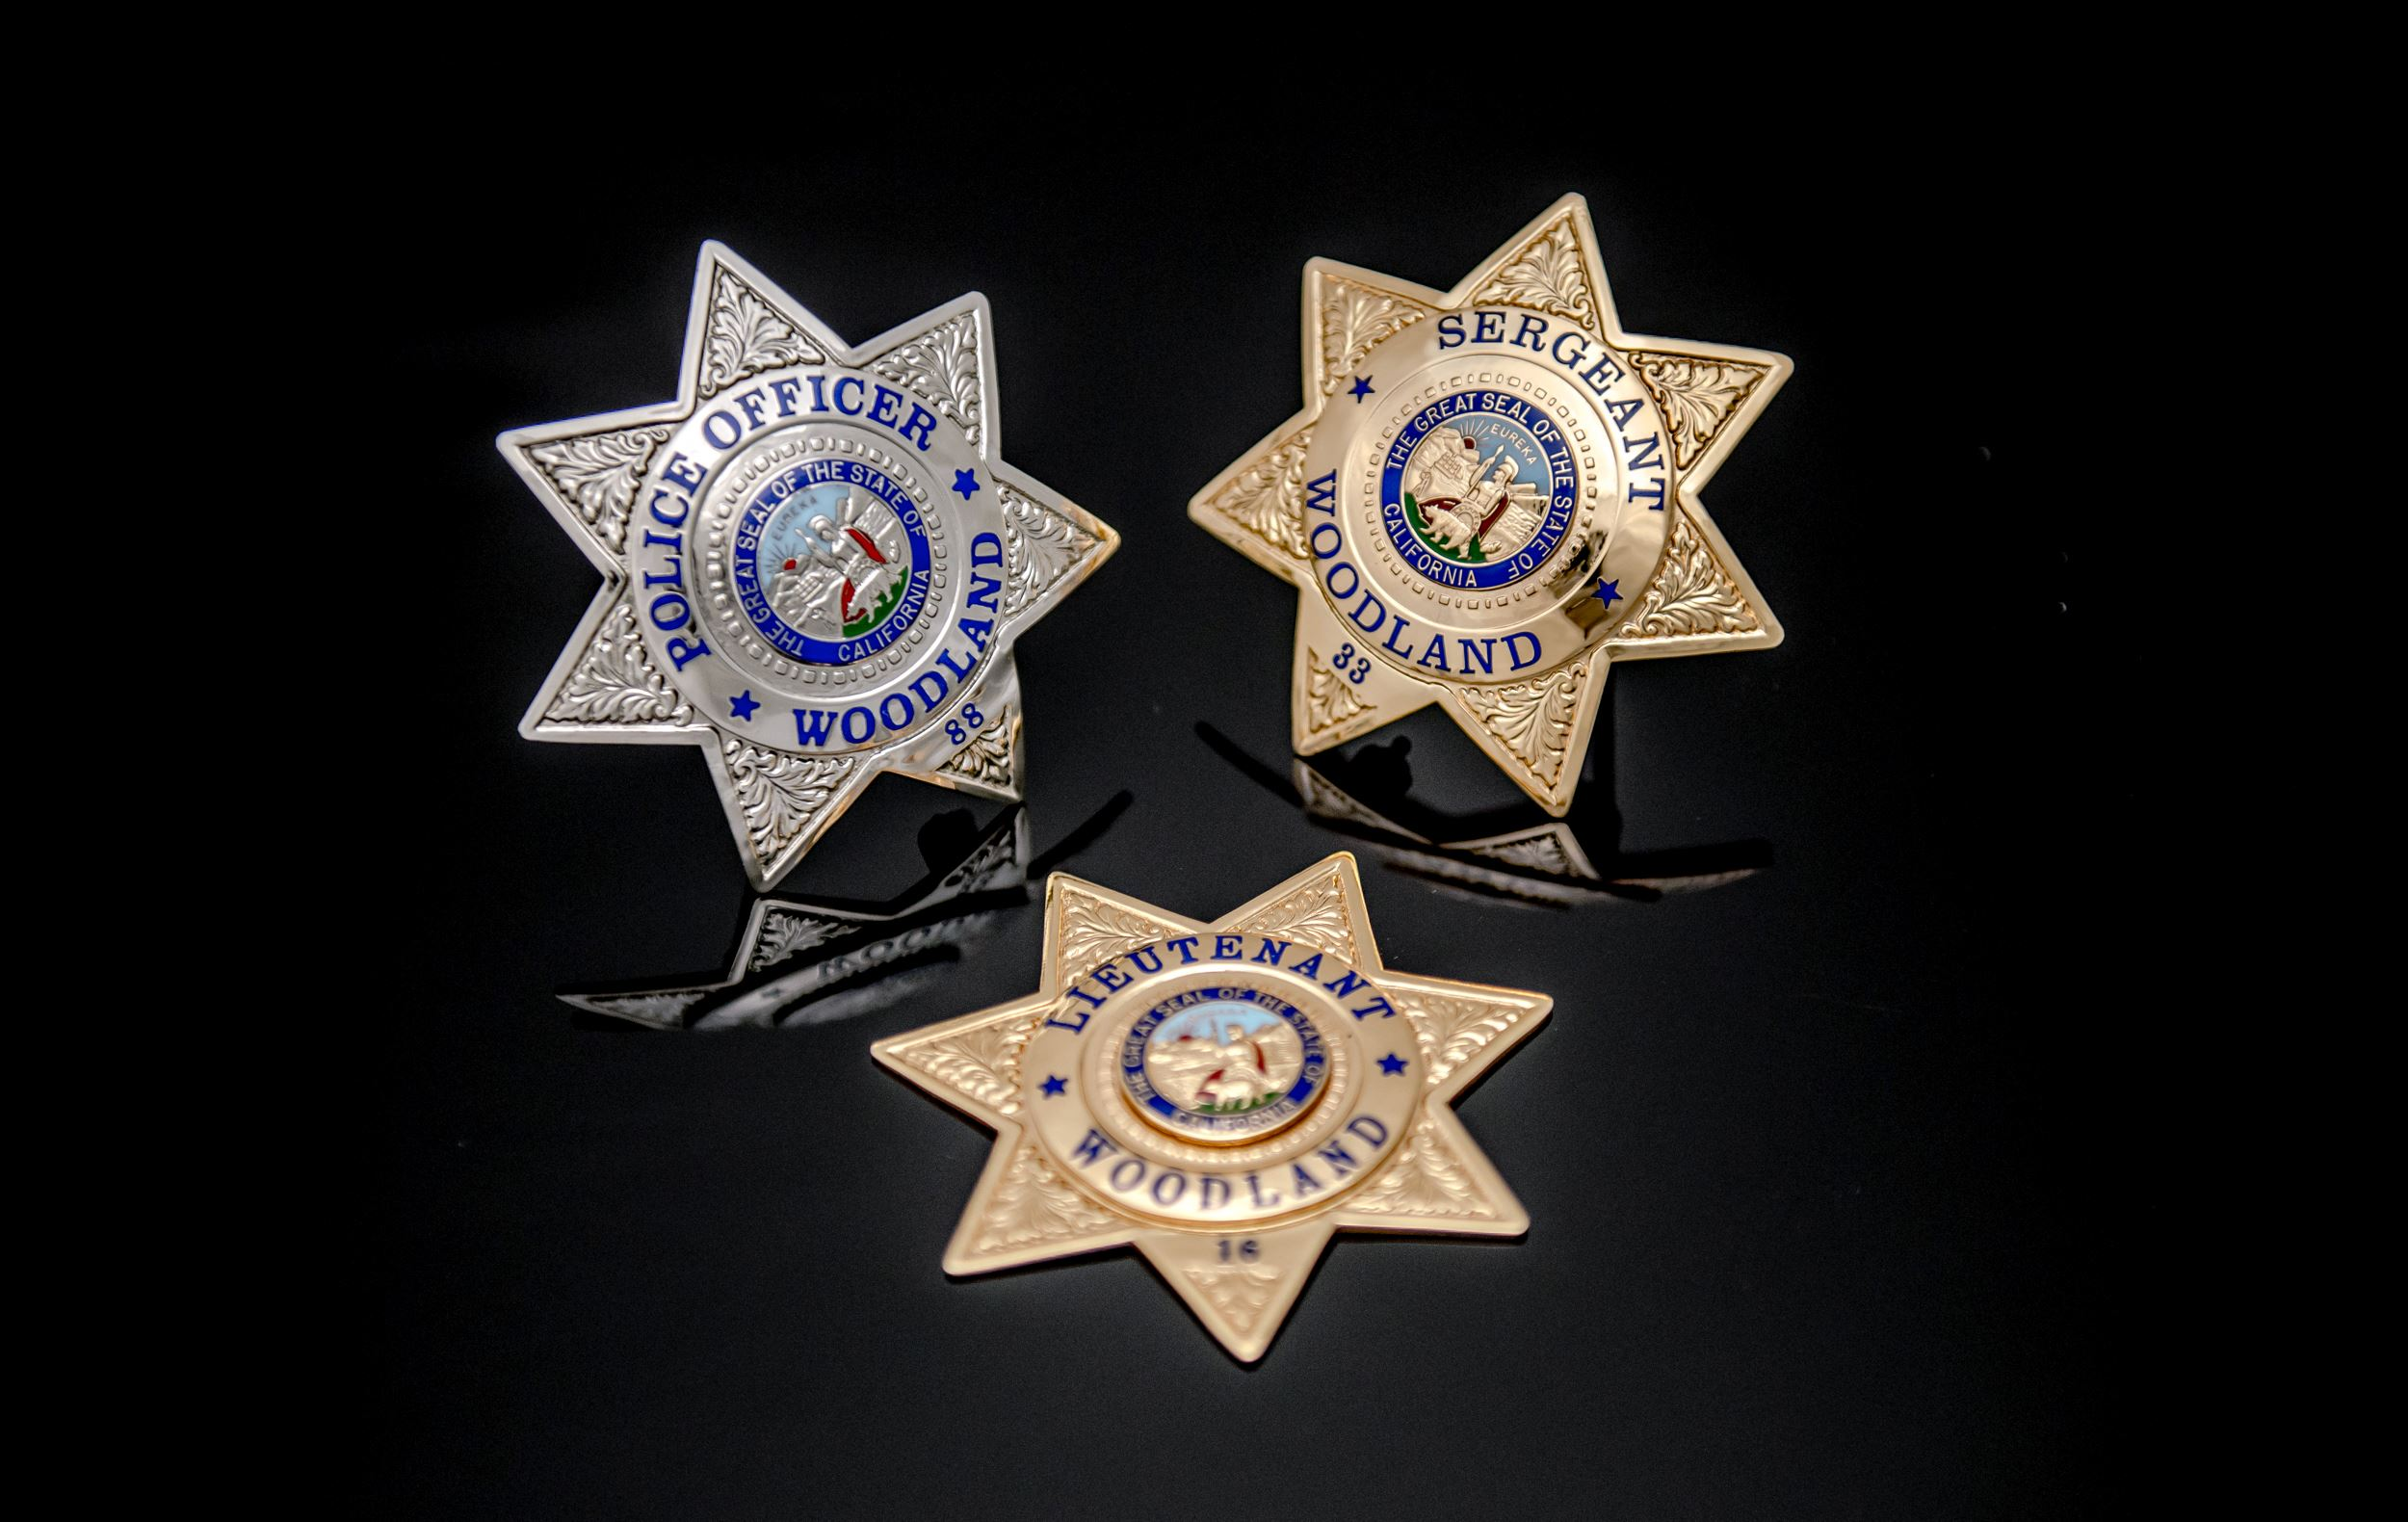 All 3 Badges of the Police Department